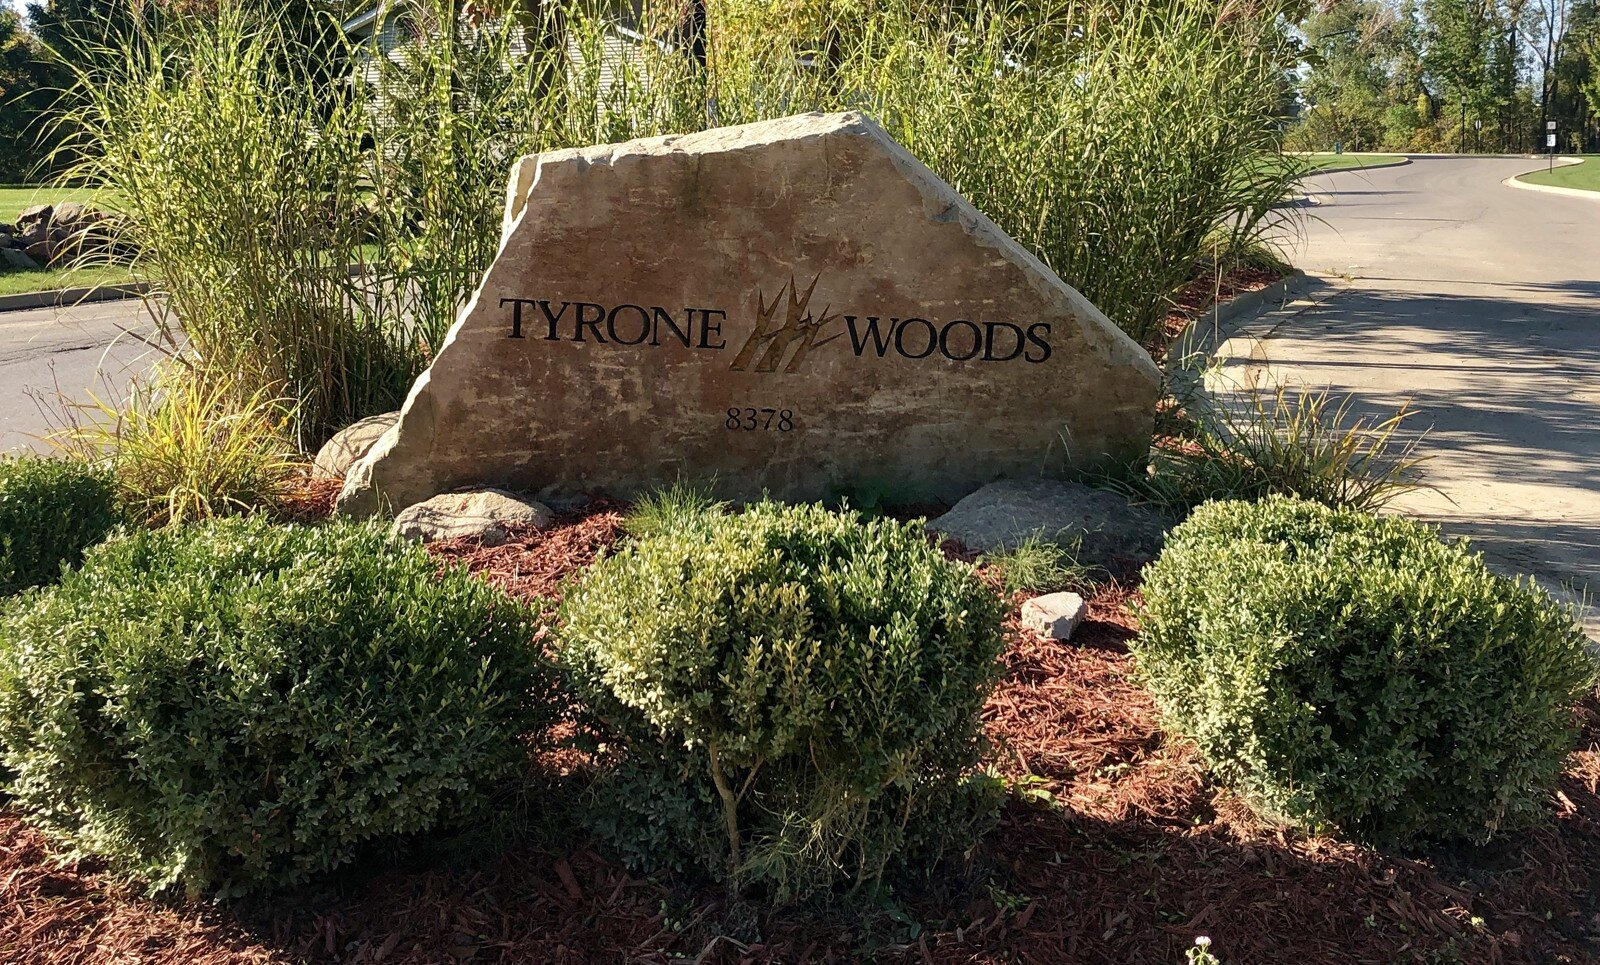 Tyrone Woods Manufactured Home Community Marker